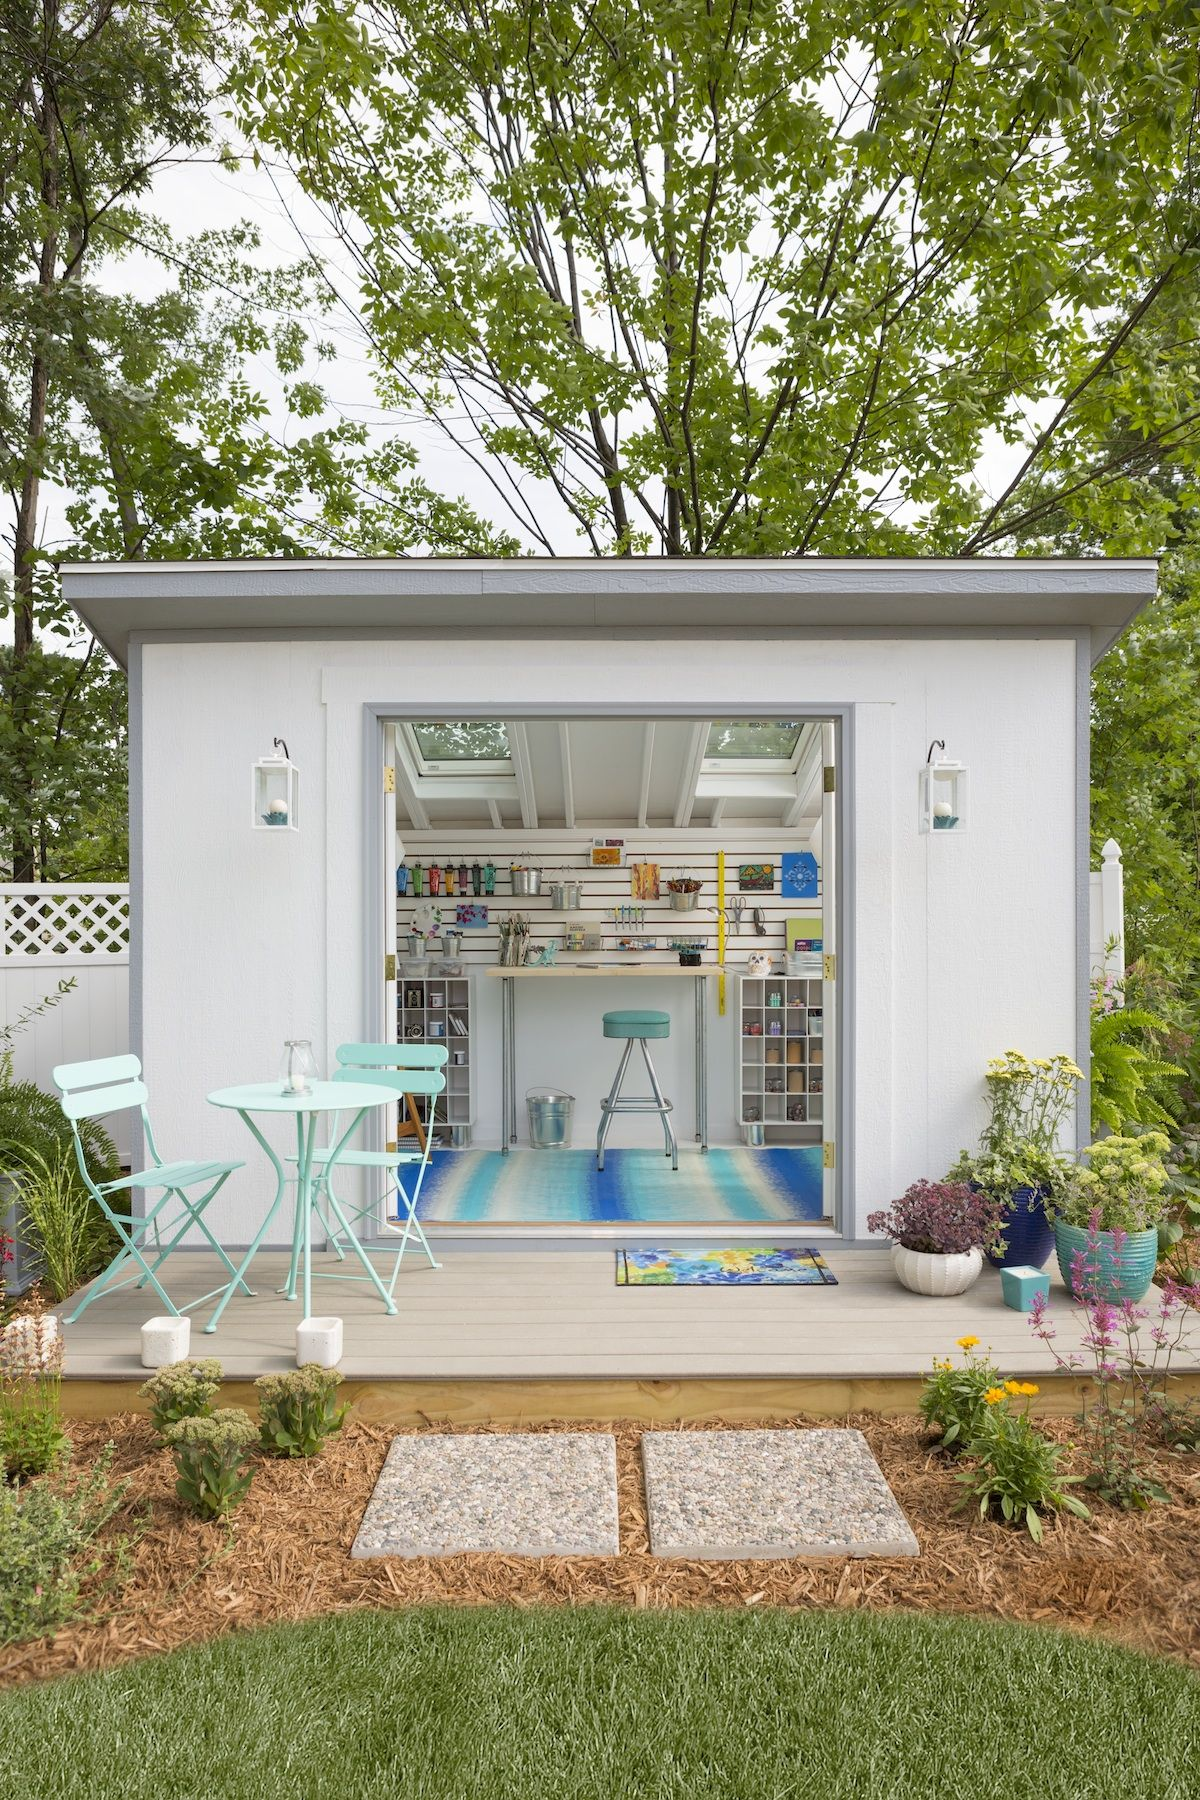 We Re Sharing The Secrets To Creating Your Own She Shed Build Backyard Escape With These Creative Ideas For Four Distinct Designs